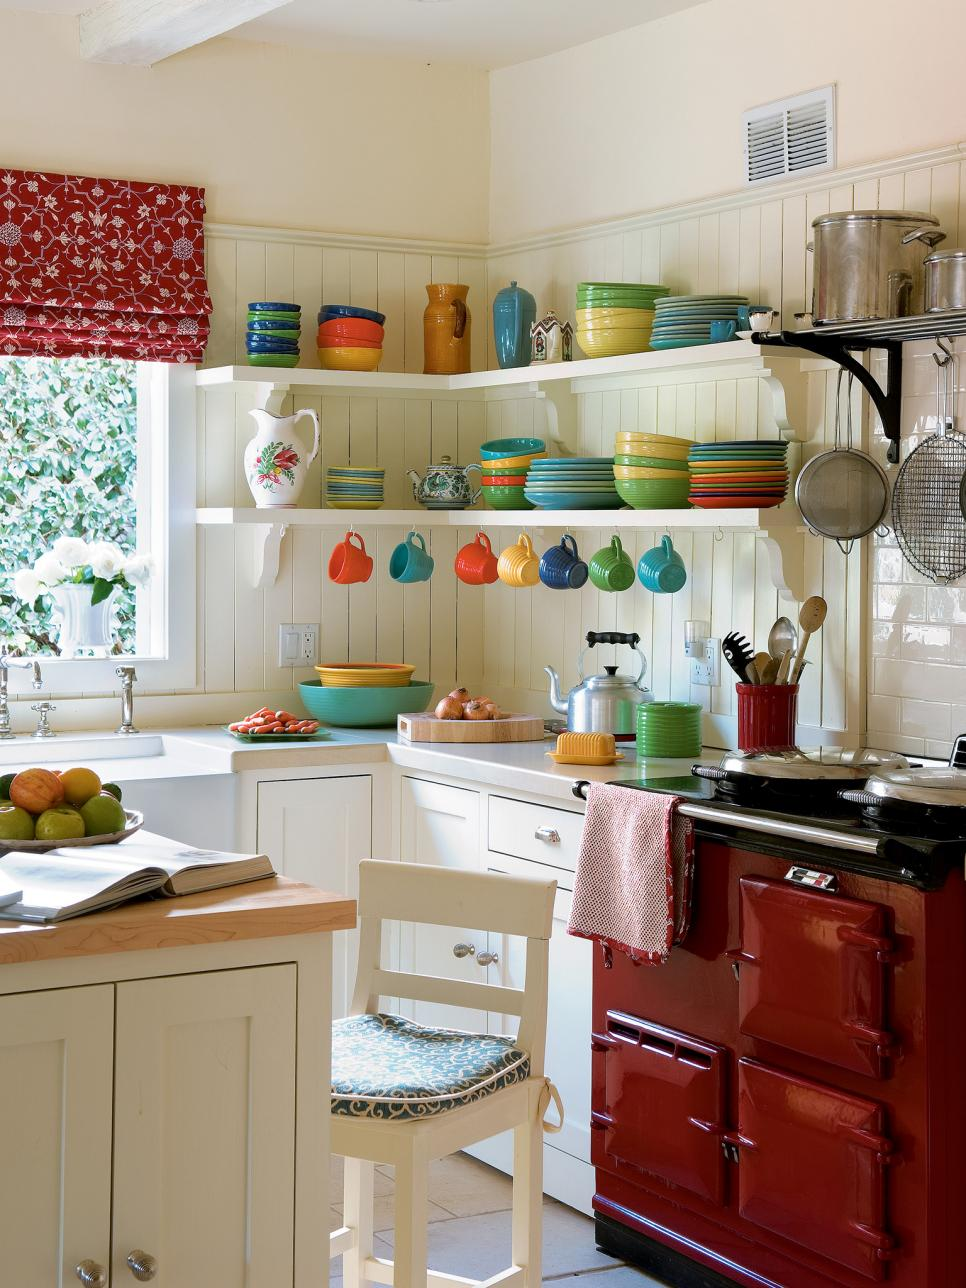 Chic interior design ideas for kitchen pictures of small kitchen design ideas from hgtv | hgtv apgdotb